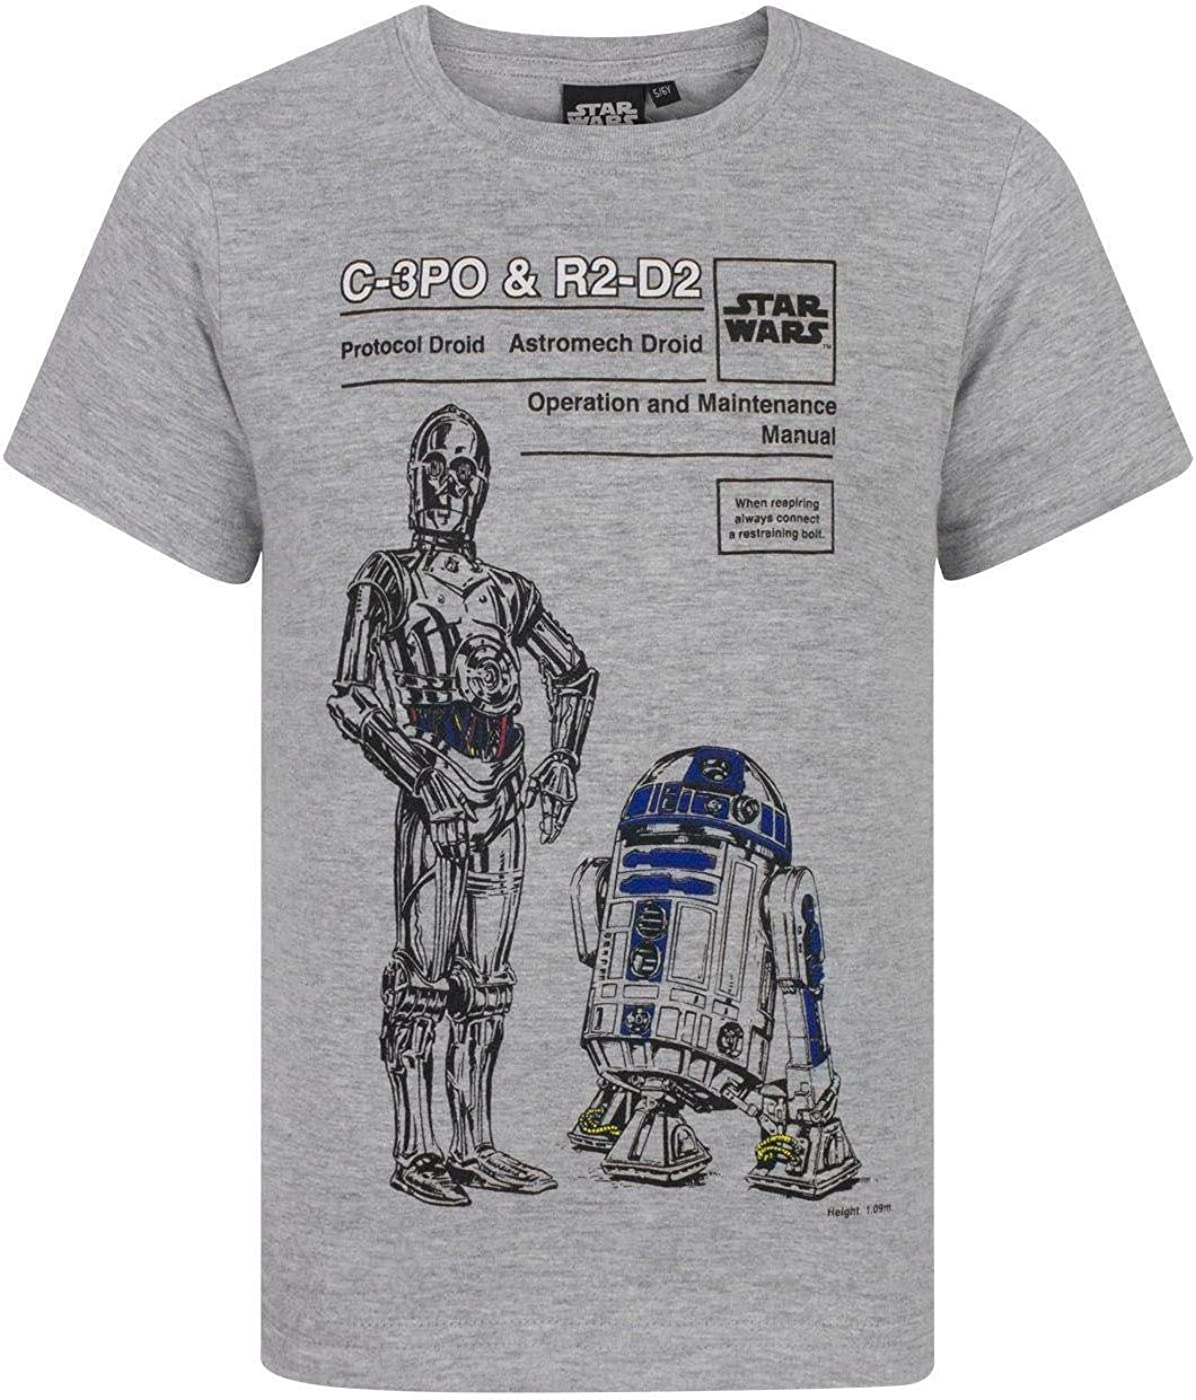 Branded goods Star Wars C-3PO Free Shipping New and Boy's R2D2 T-Shirt